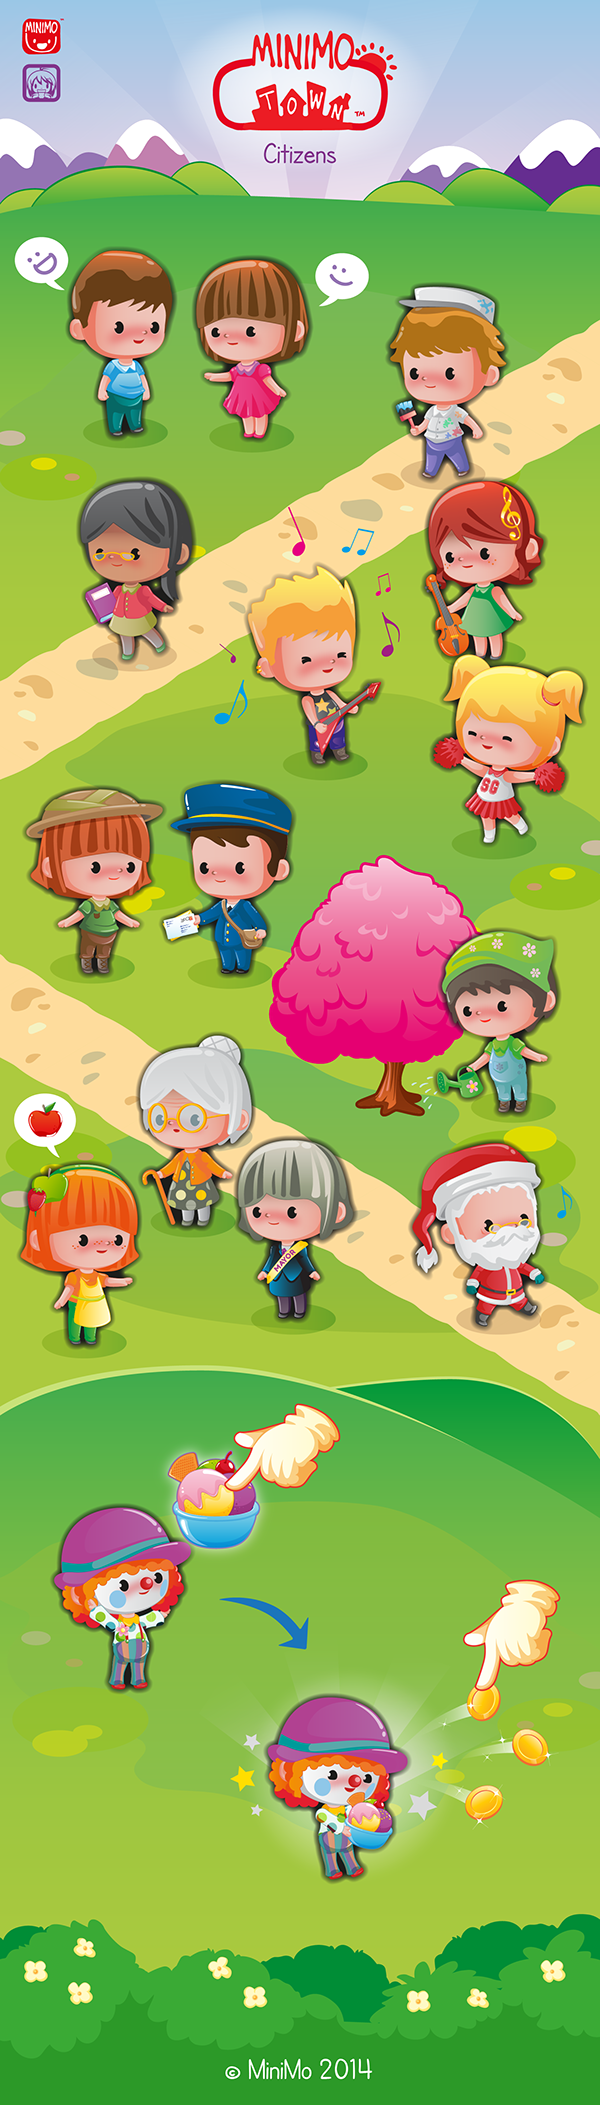 minimo town game citizens characters kids children Fun